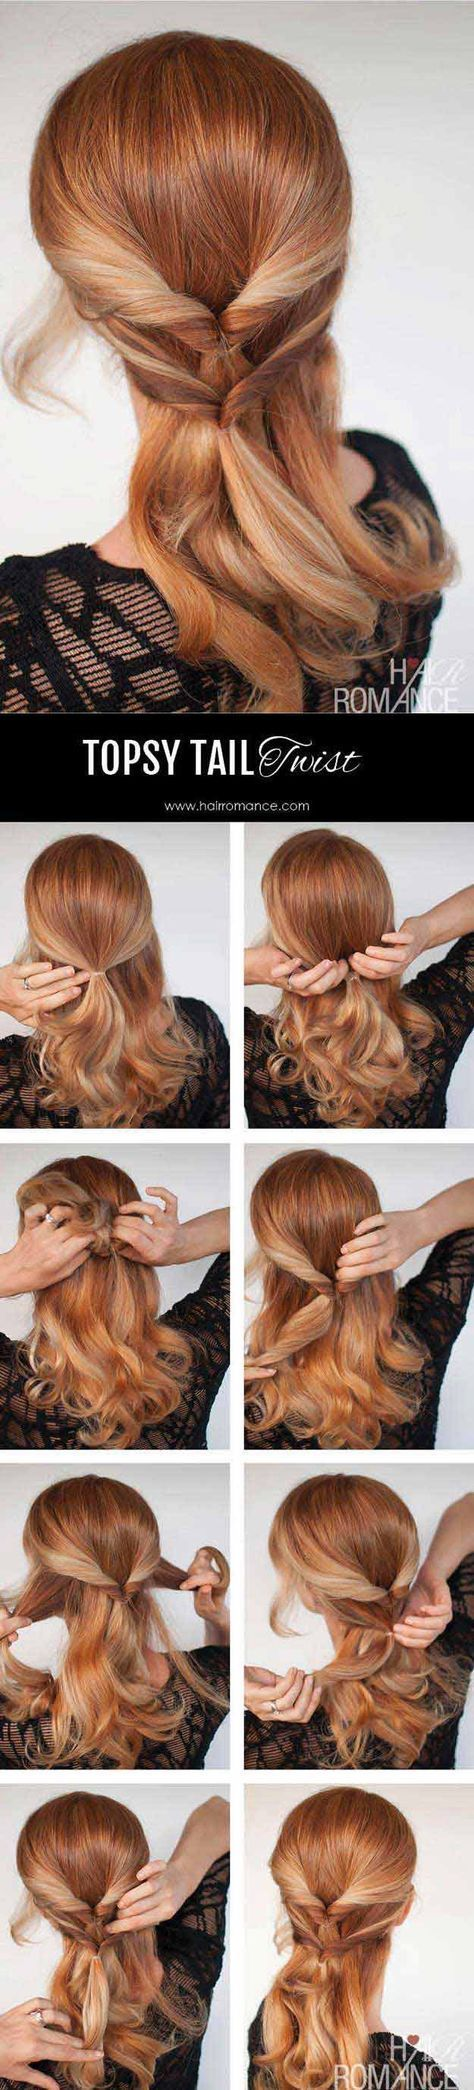 Best hairstyles for the summer – Hairstyle Tutorial – A twist on the twisted cock € … – #Best #den # a #Hairstyles #HairstylesTutori